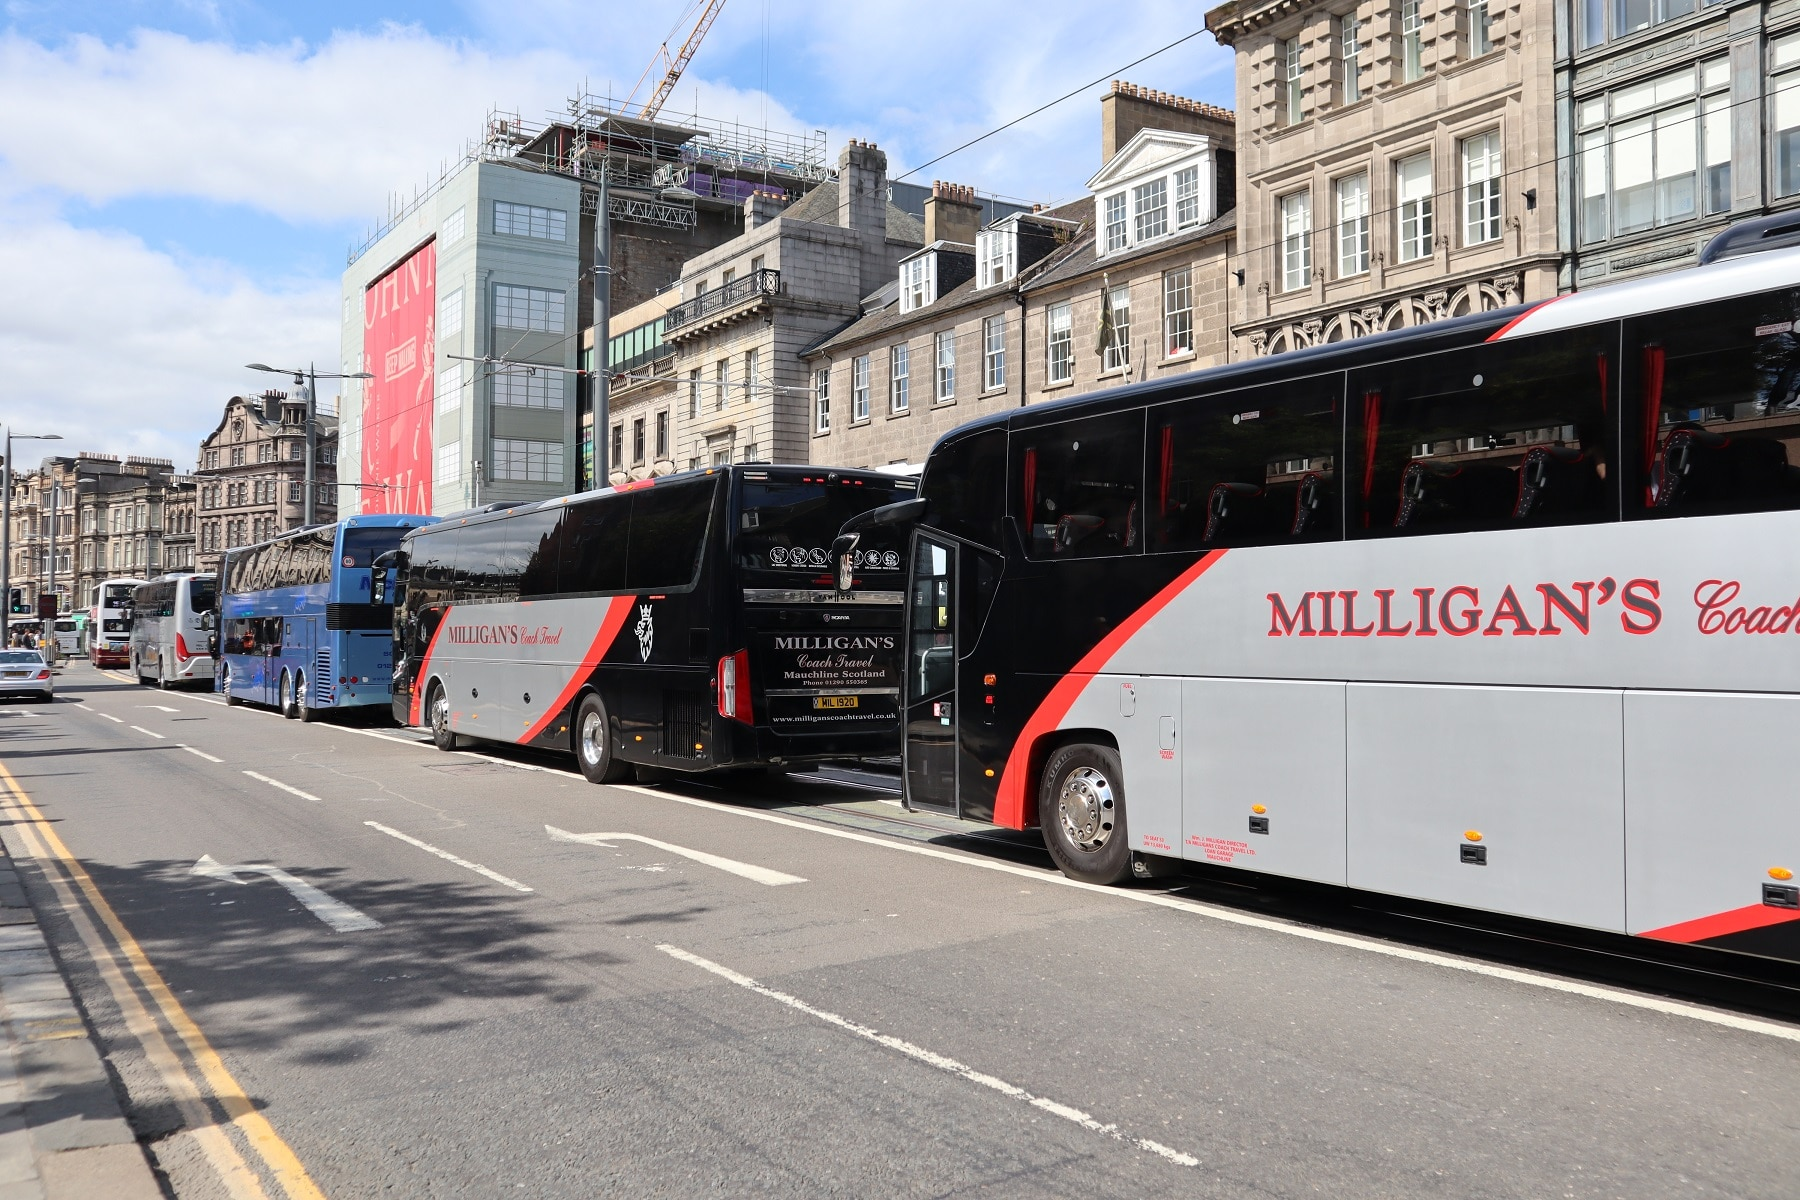 Scottish coach industry support package announced